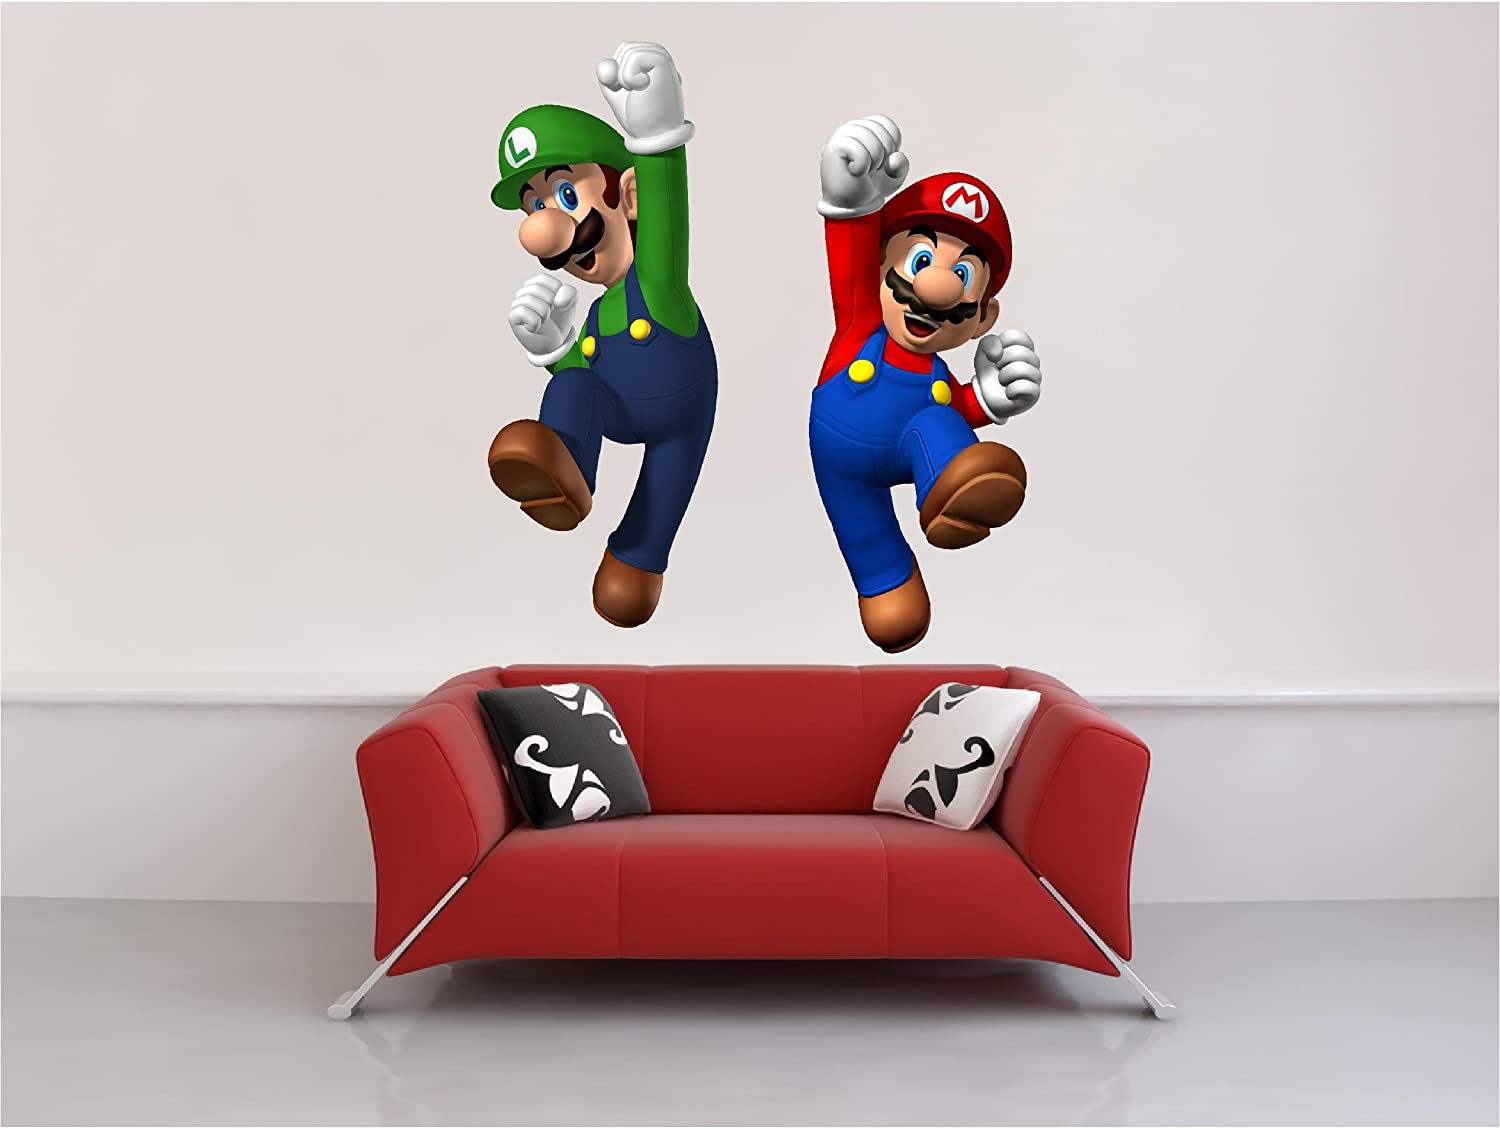 Super mario wall decals totally kids totally bedrooms kids bedroom ideas - Mario wall clings ...